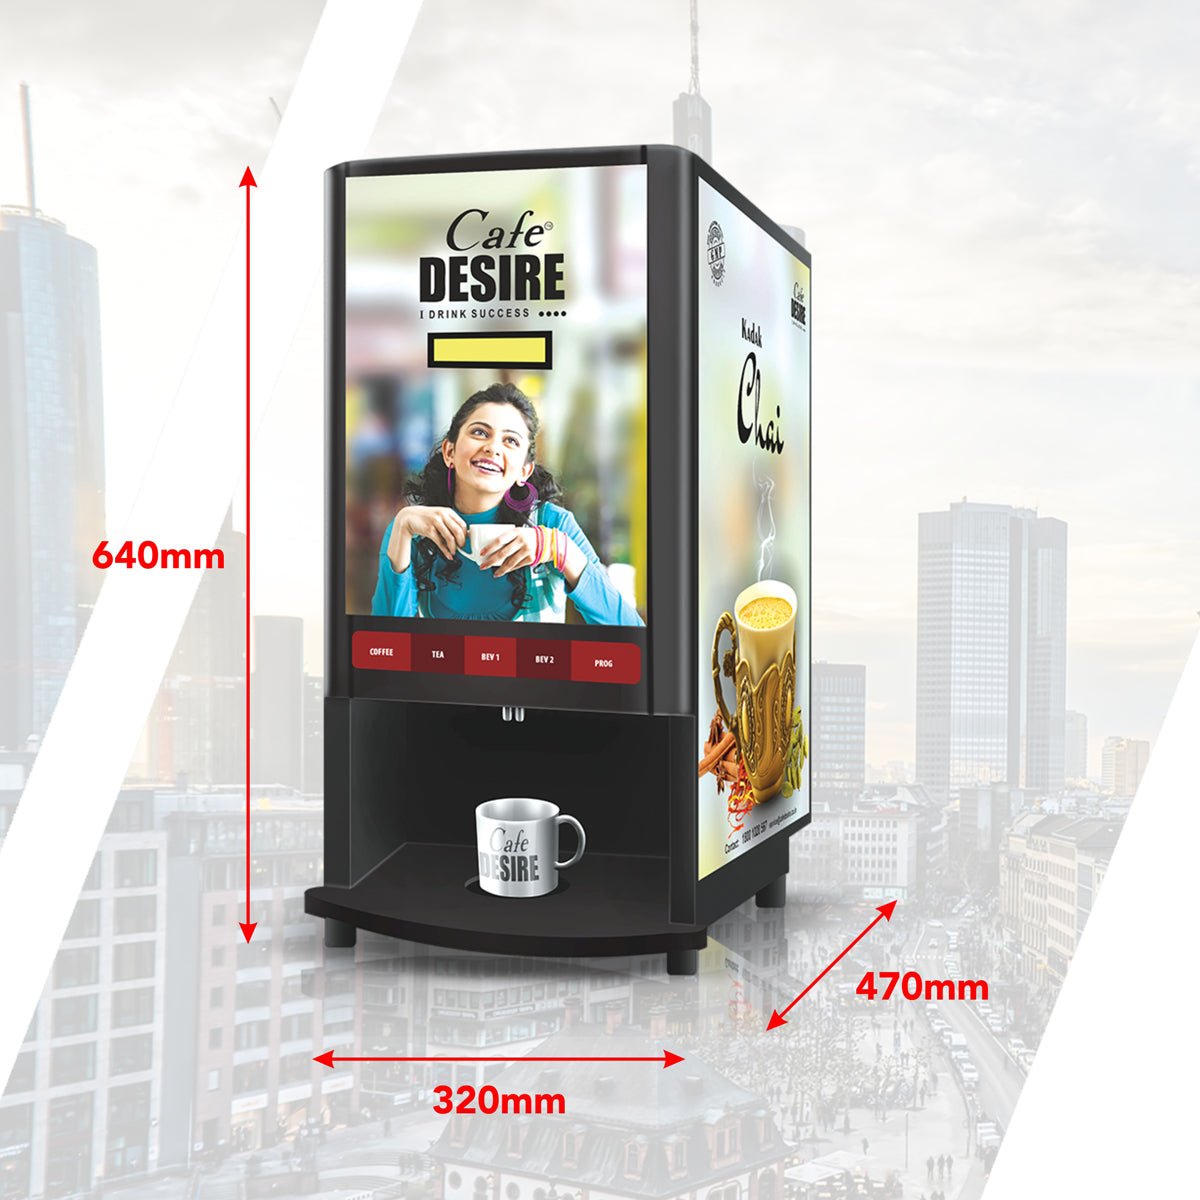 Coffee Machine 4 Lane | Four Beverage Options | Fully Automatic Tea & Coffee Vending Machine | For Offices, Shops and Smart Homes | Make 4 Varieties of Coffee Tea with Premix | No Milk, Tea, Coffee Powder Required